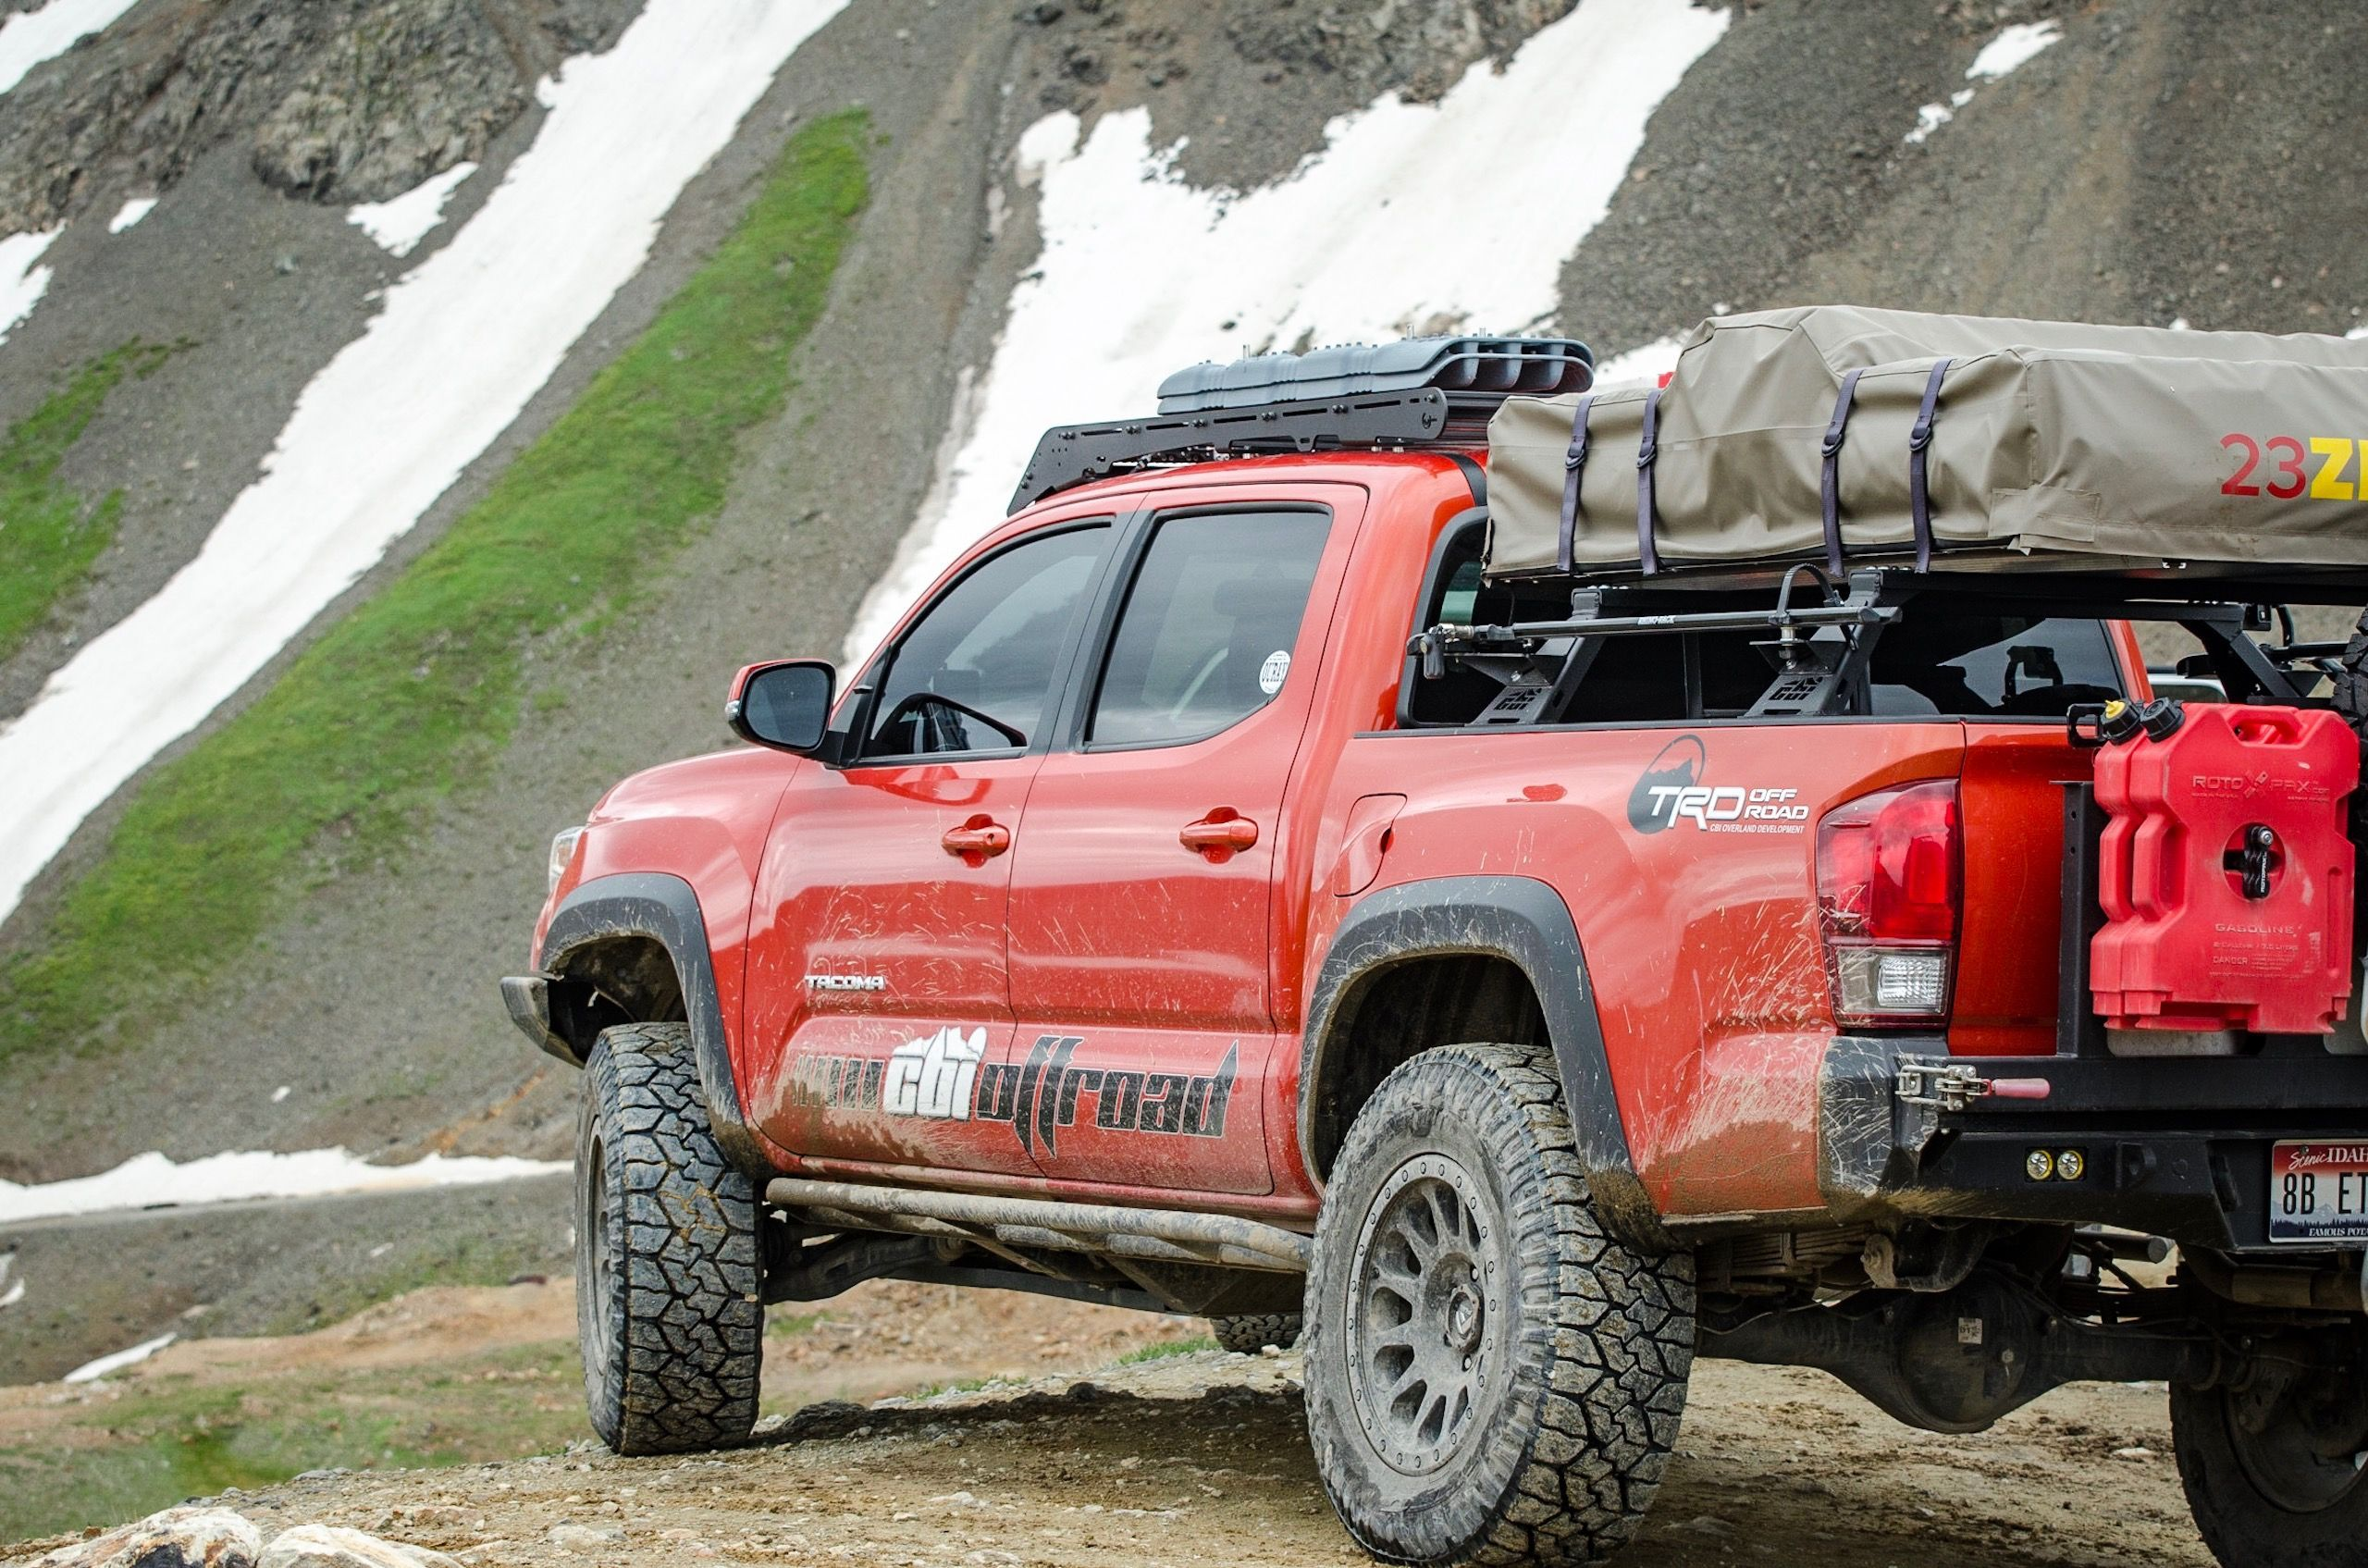 T3 Tacoma Rear Bumper With Swing Away Tire Carrier Cbi Offroad Fab Your Solution For Outdoor Adventure Vehicle A Tacoma Truck Toyota Tacoma Toyota Trucks